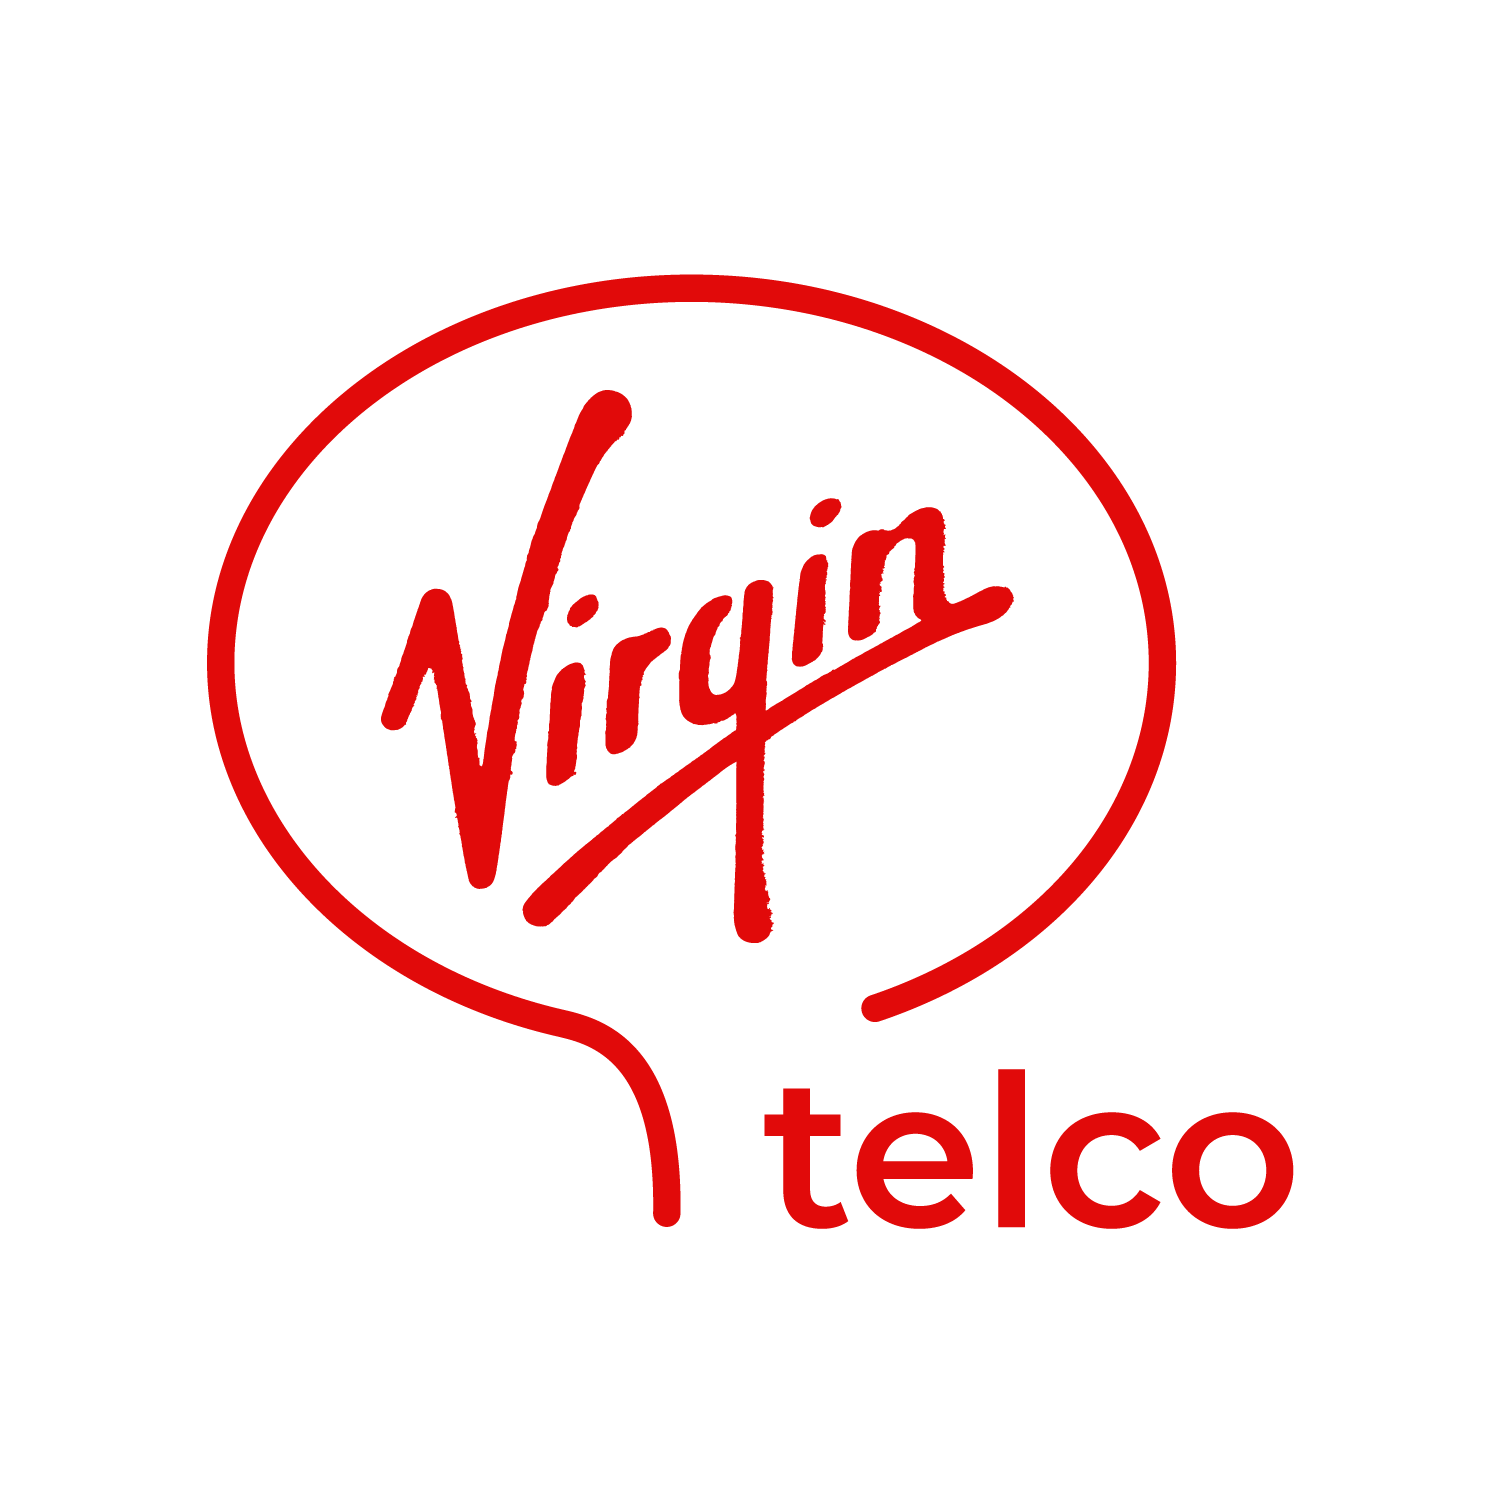 Virgin telco logo